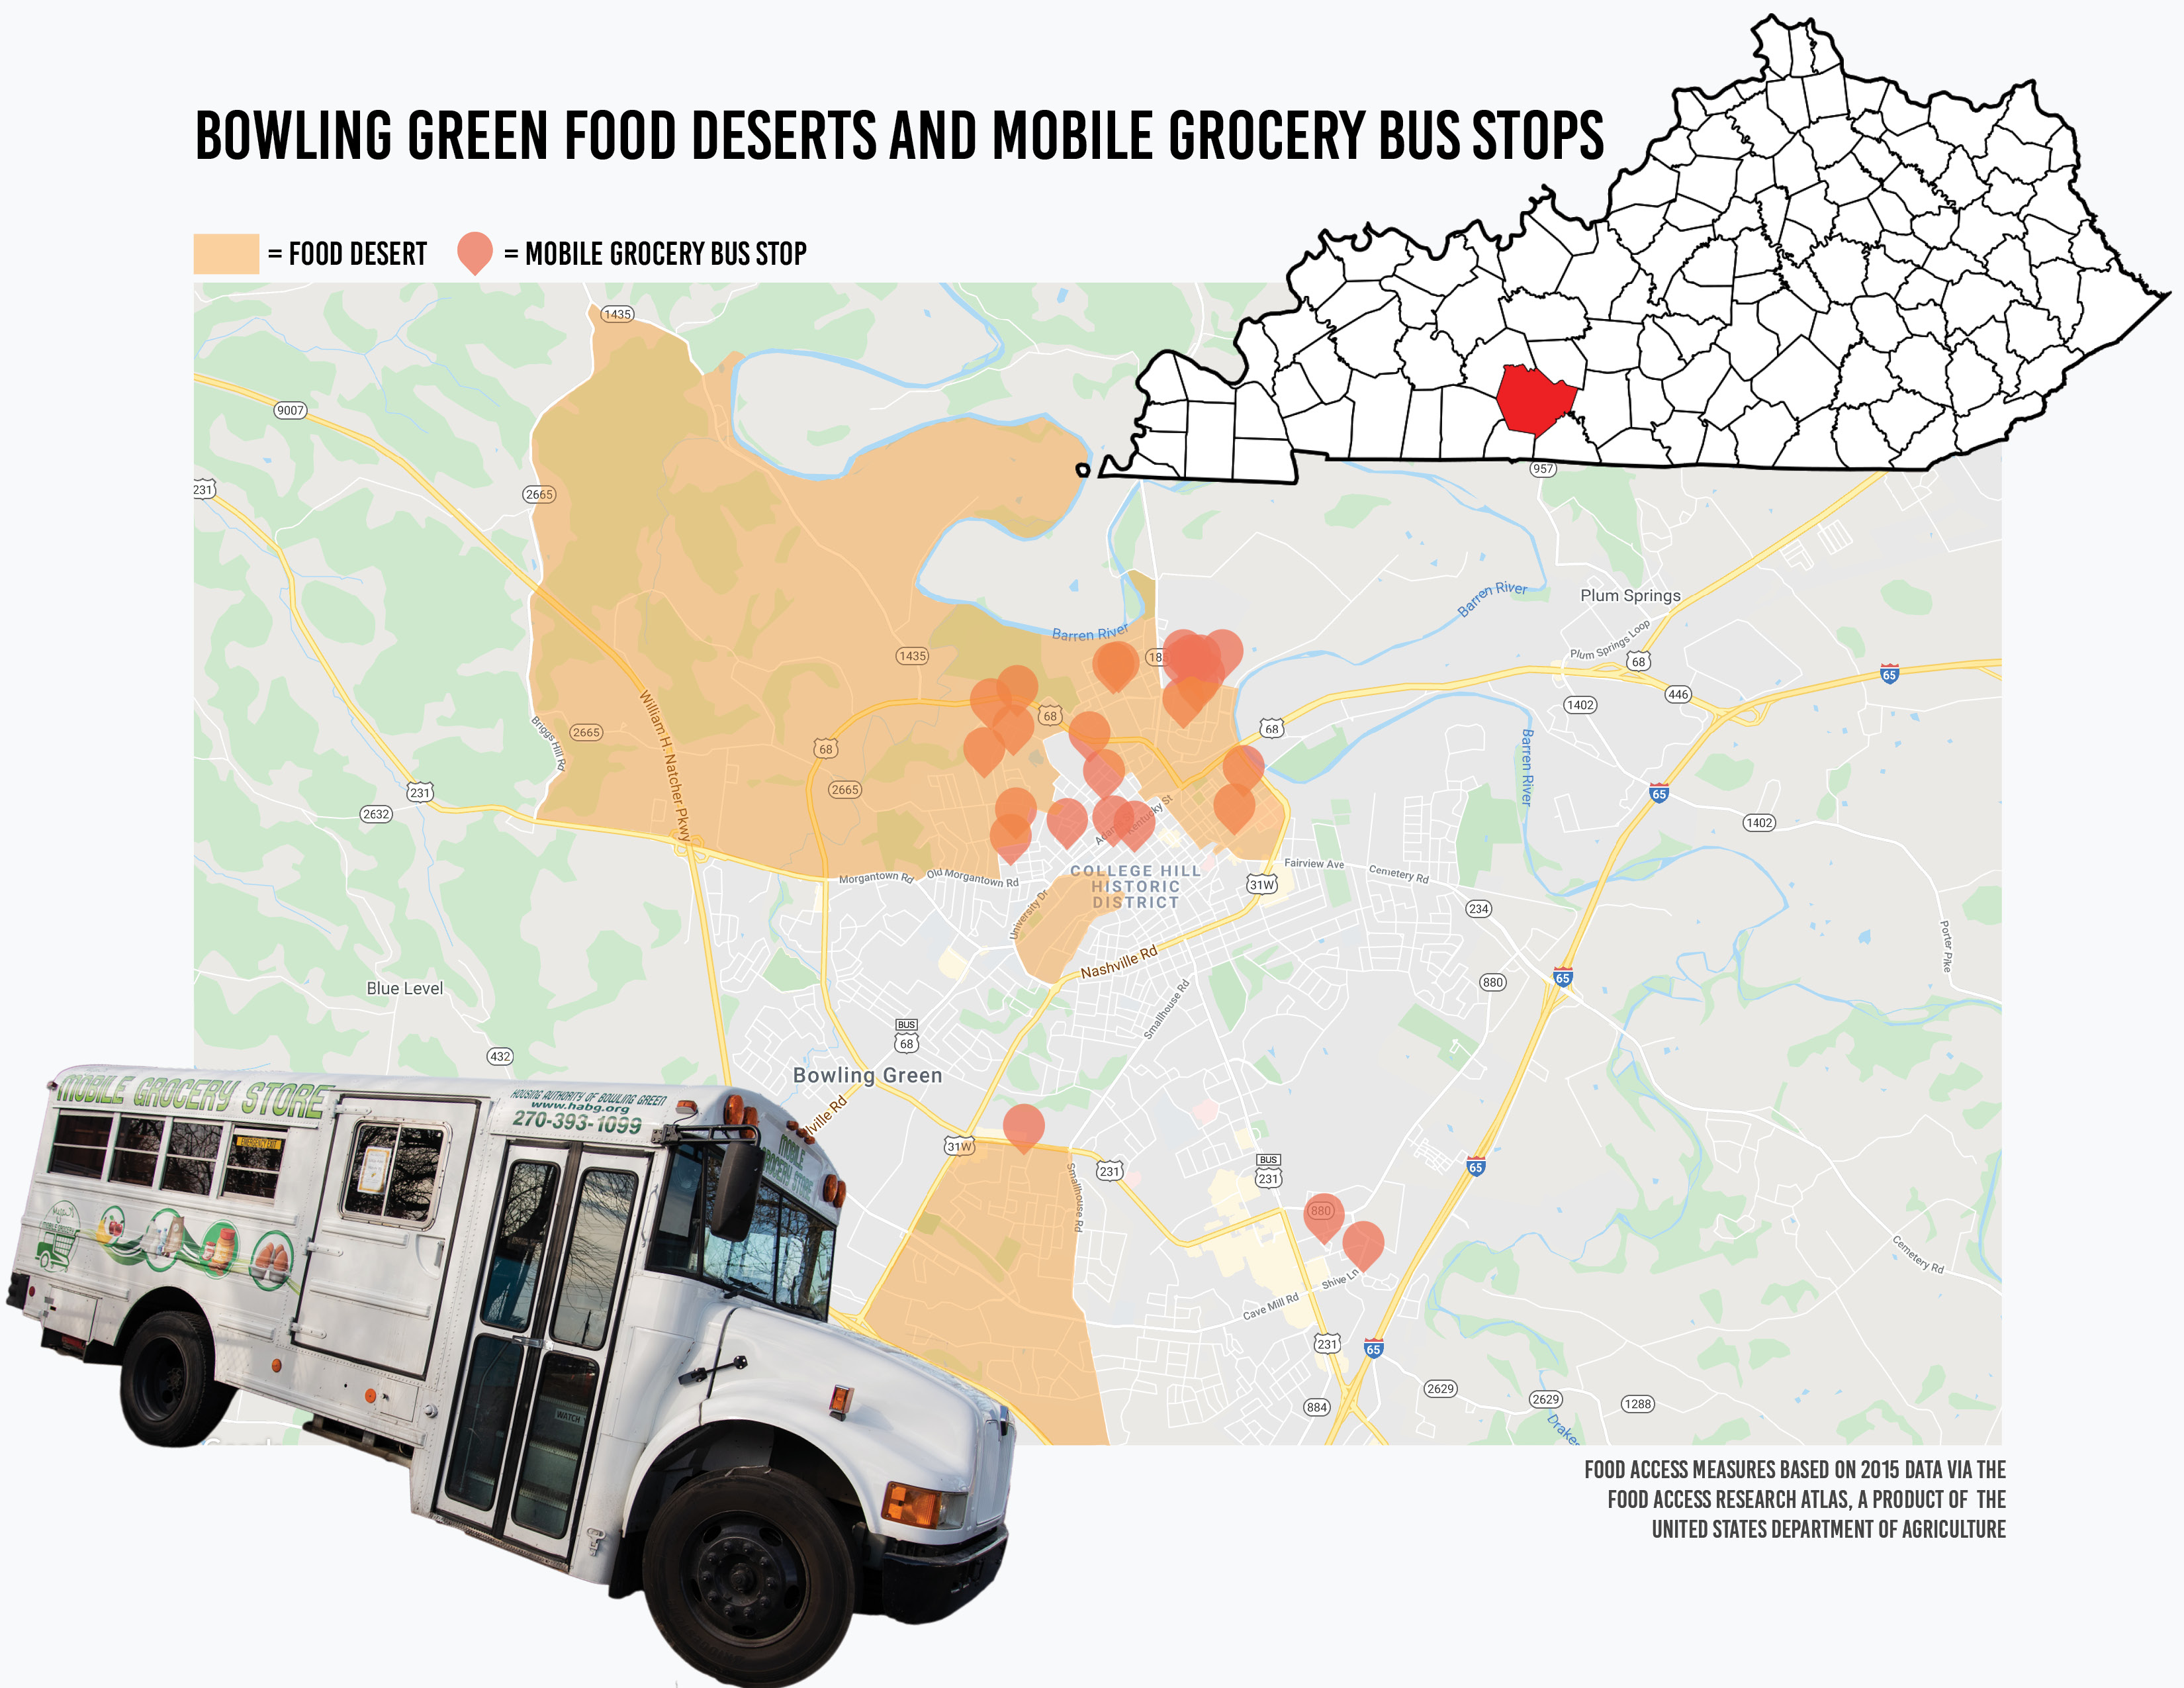 In this map of Bowling Green and surrounding areas of Warren County, Ky., the county highlighted in the map of the state, the orange shaded areas are classified as a food desert by the USDA's qualifications. The Mobile Grocery Bus stops are pinpointed - falling mostly within the food deserts and neighboring areas. Map data via Google Maps.